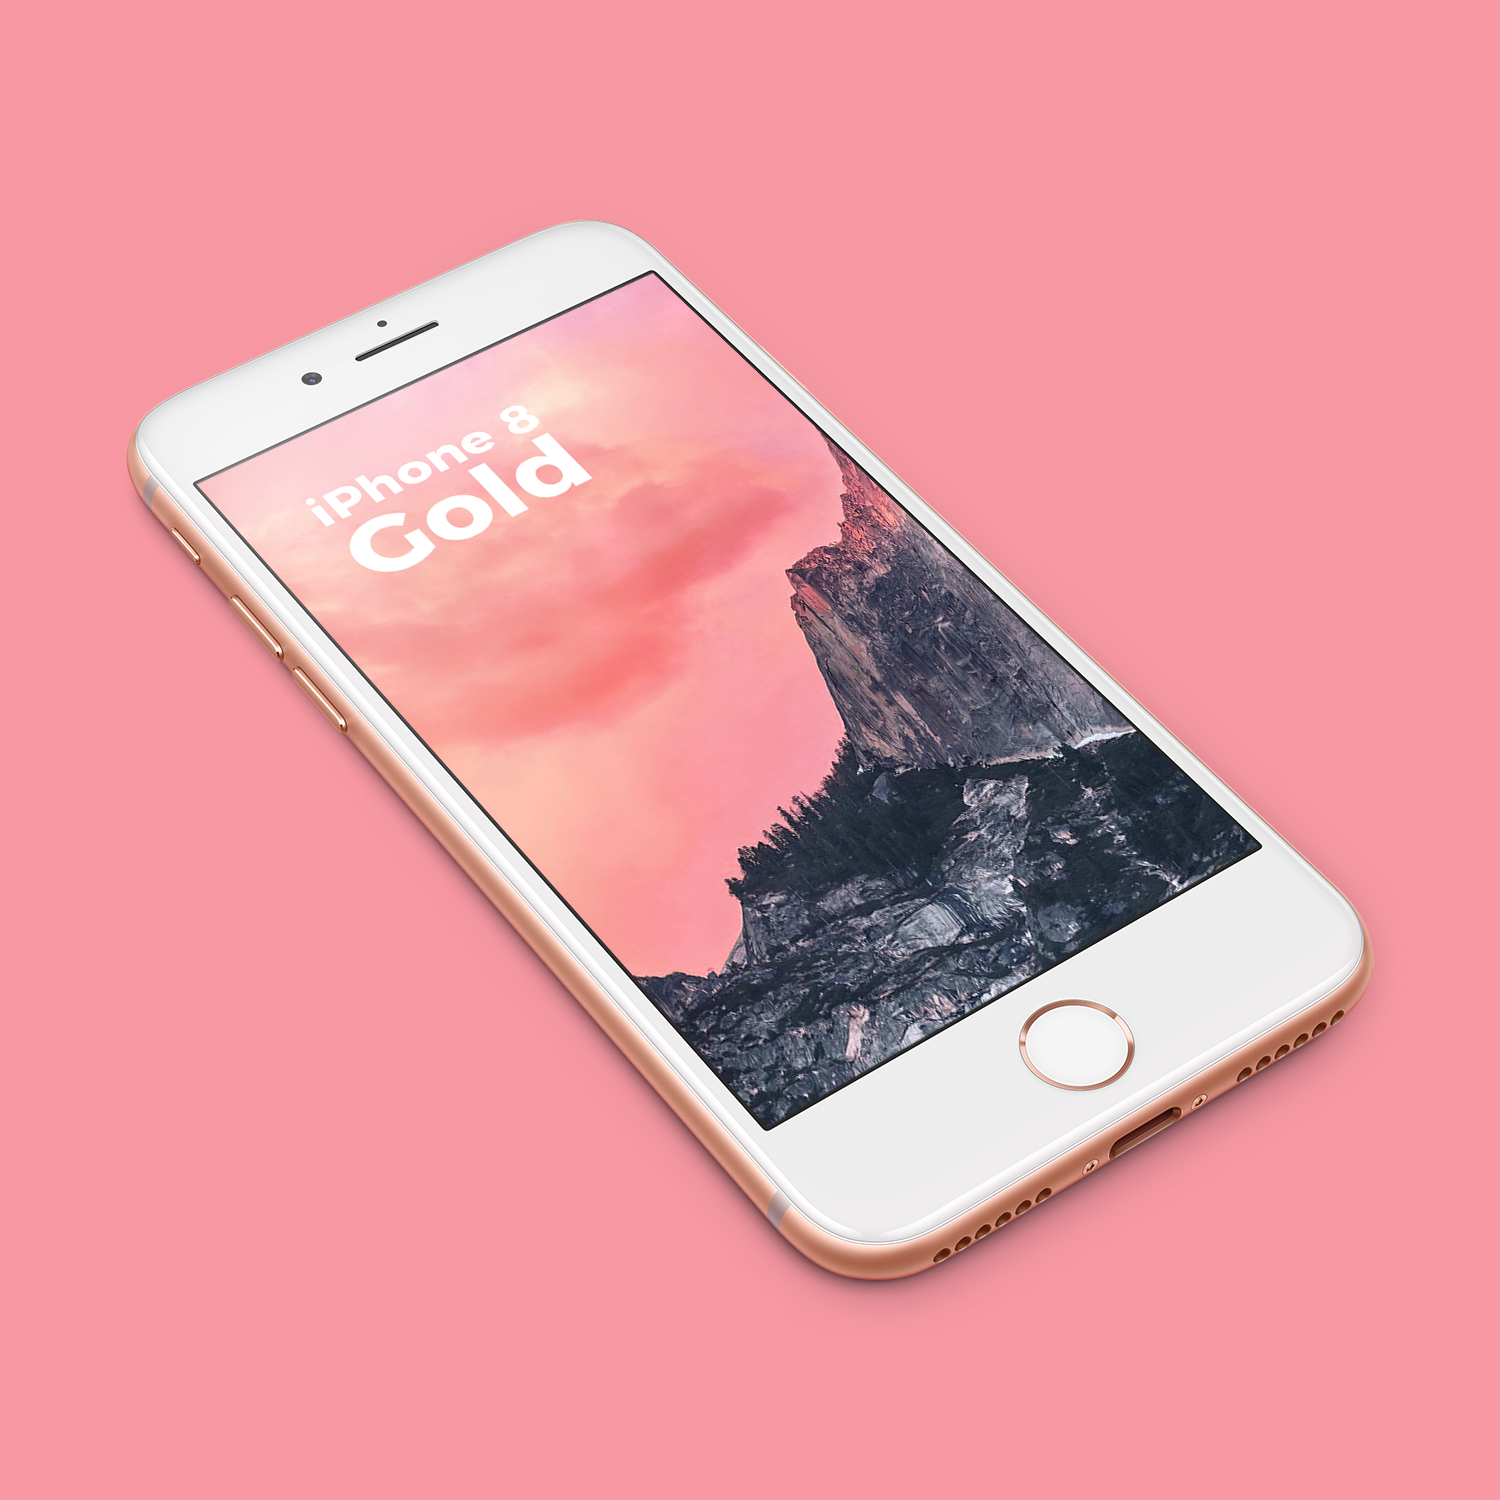 Free-Perspective-View-iPhone-8-Gold-Mockup